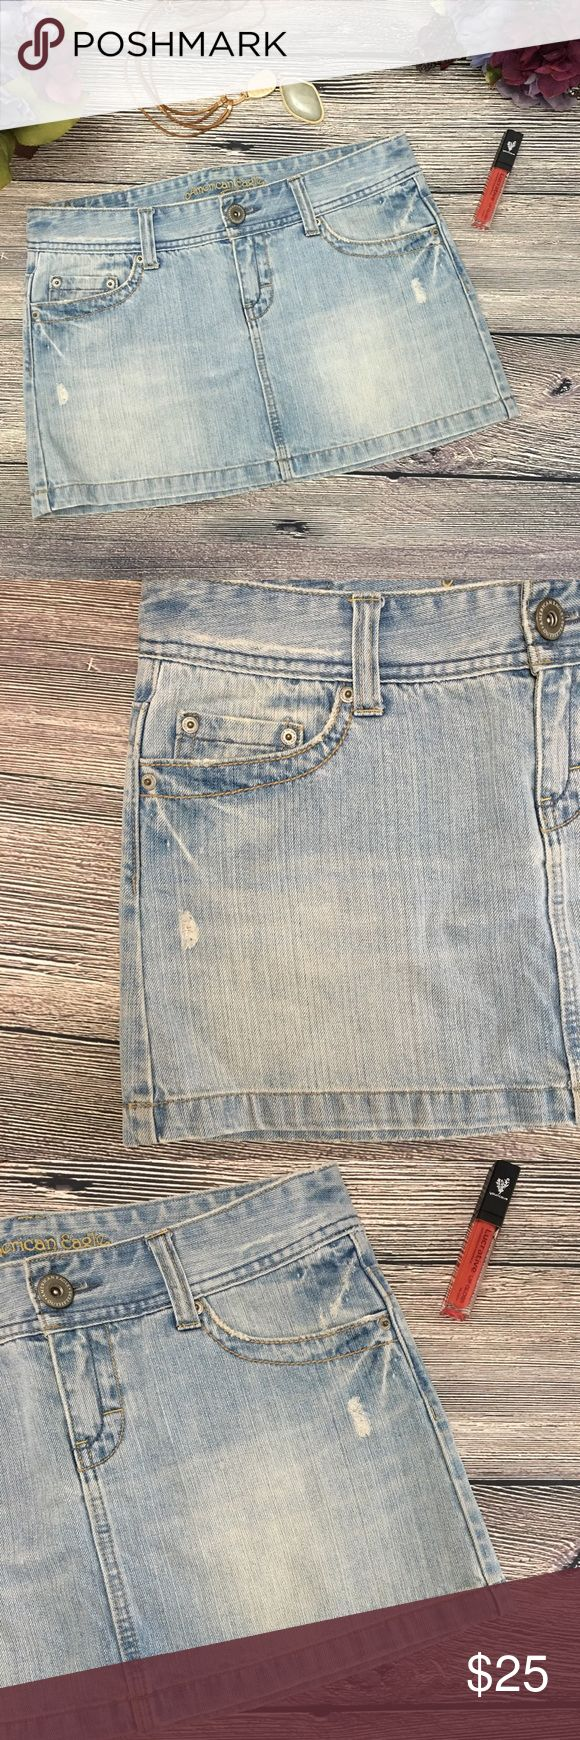 """AEO Distressed light wash denim mini skirt so 8 Meet Macie. From American Eagle Outfitters, shes distressed denim to perfection. A light blue with factory distressing that instantly makes her look like she's been your favorite forever. Traditional 5 pocket styling, AEO stamp on front button/zip fly closure. 100% cotton. Approx. 16.25"""" waist, 13"""" length waist to hem in back, closer to 12"""" length in front (extra inch in back to cover your behind). Measurements taken when laid flat and not…"""